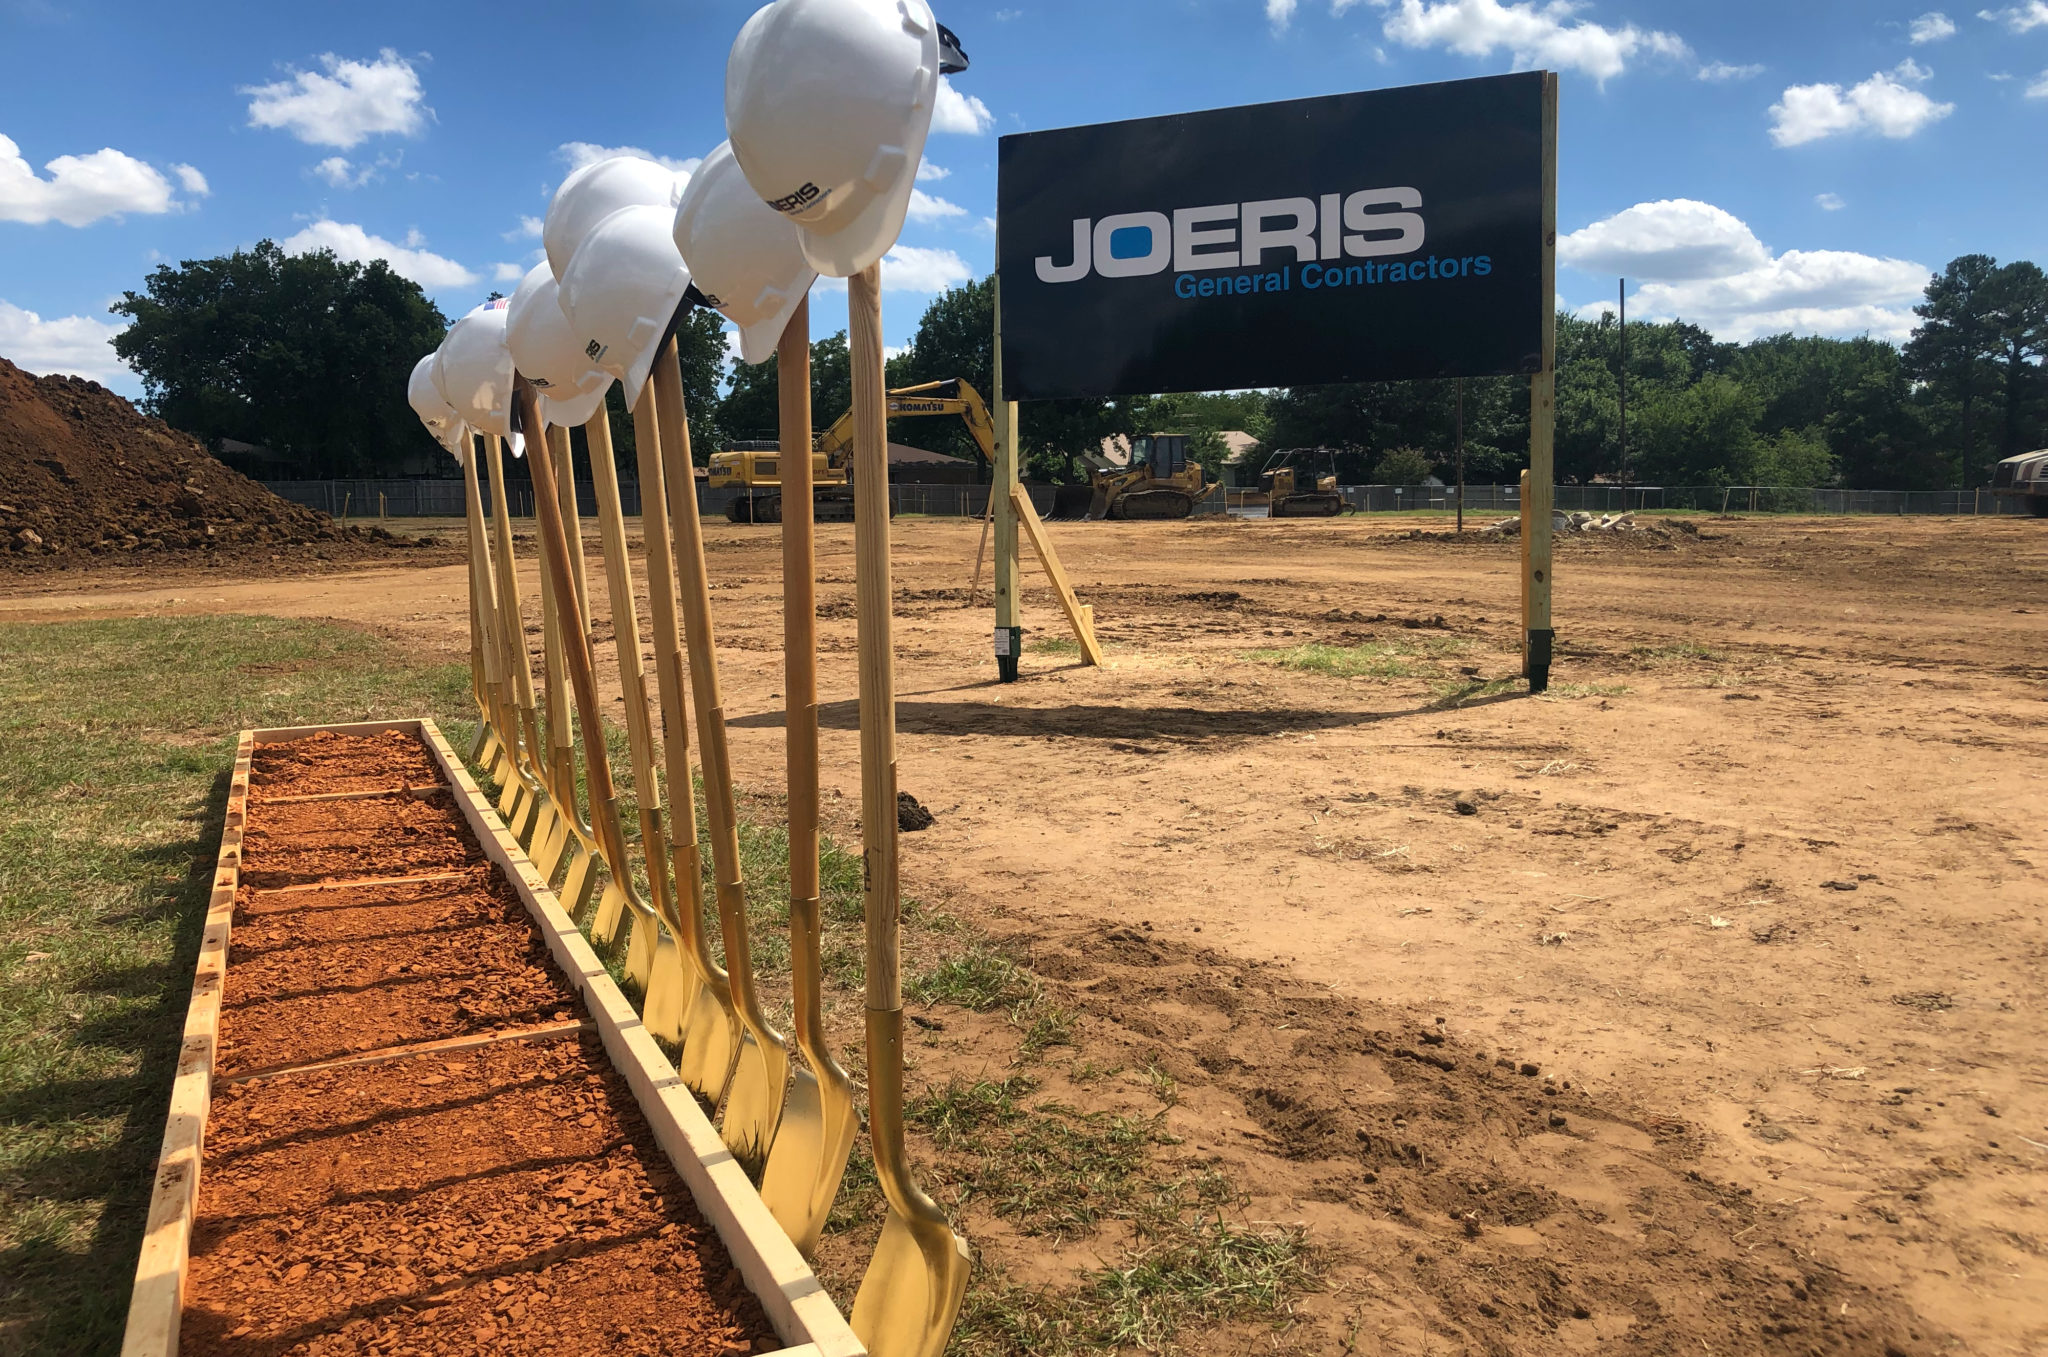 Breaking ground at a new jobsite